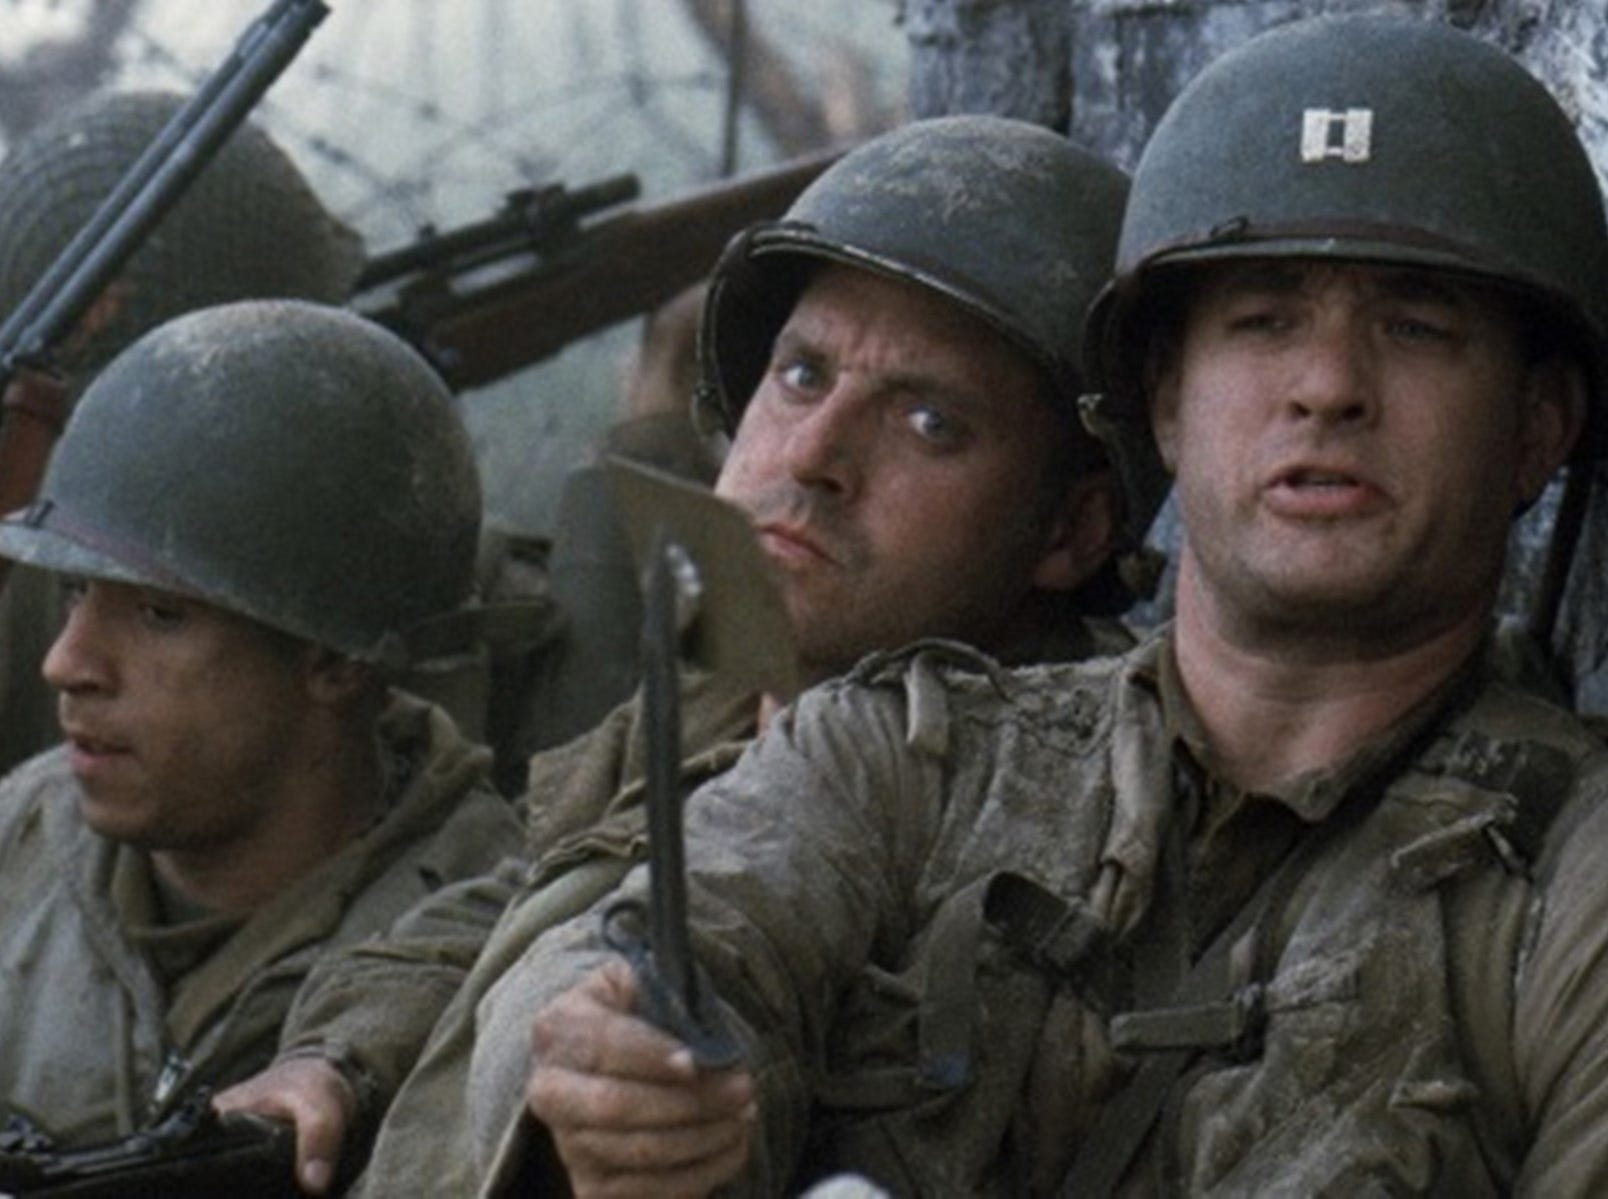 """This handout photo provided by DreamWorks and the Library of Congress shows Tom Hanks in a scene from the movie """"Saving Private Ryan."""" """"Saving Private Ryan"""" and """"Ferris Bueller's Day Off"""" are among 25 movies being inducted this year into the National Film Registry for long-term preservation, the Library of Congress announced Wednesday. The library selected films for their cultural, historic or aesthetic qualities. This year's selections span the years 1913 to 2004. They include such familiar and popular titles as """"The Big Lebowski"""" and """"Willy Wonka and the Chocolate Factory,"""" while others were milestones in film history. (AP Photo/DreamWorks, Library of Congress) ORG XMIT: WX501"""